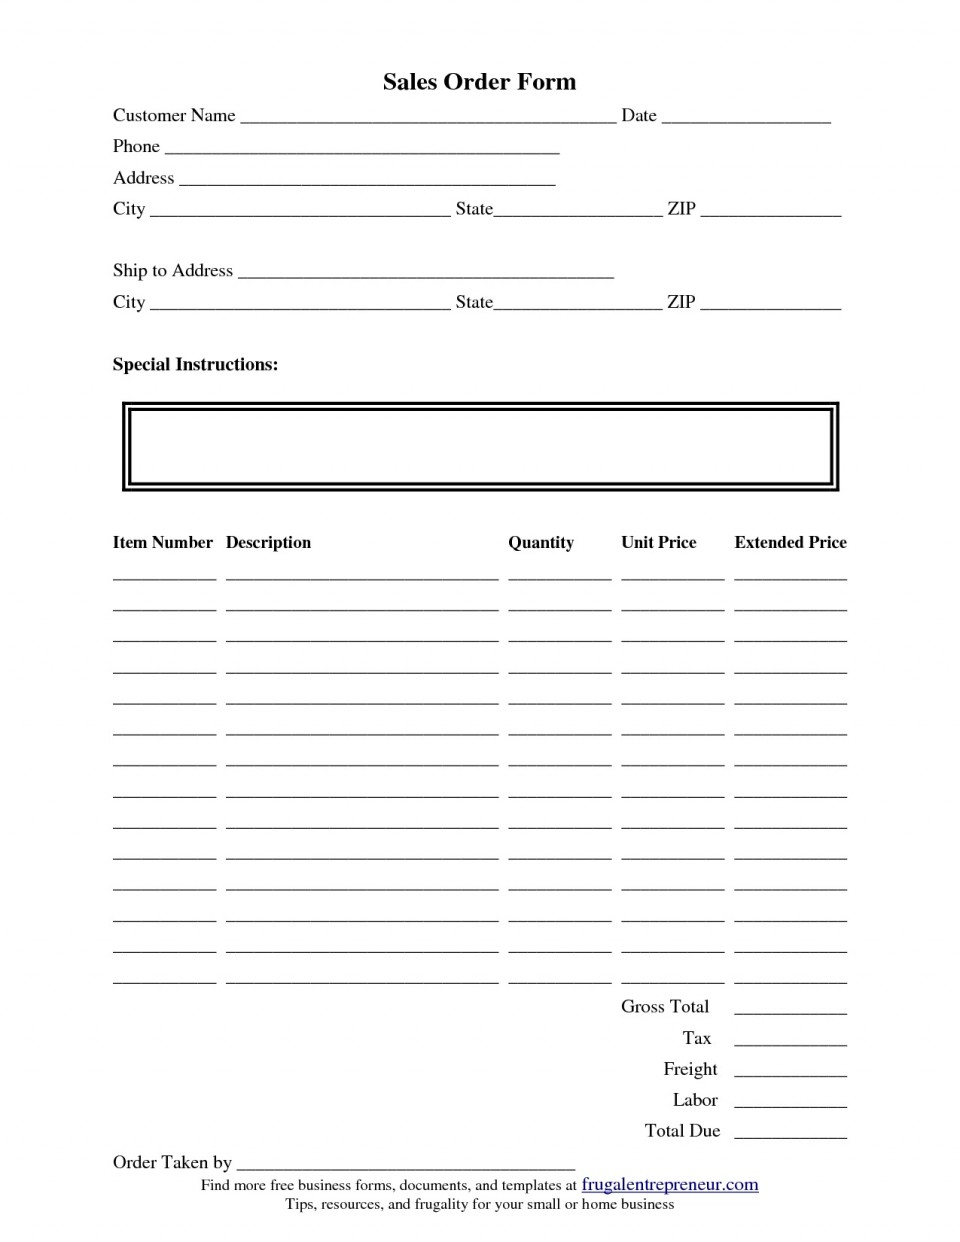 002 Dreaded Work Order Form Template High Def  Request Excel Advertising Company Free960